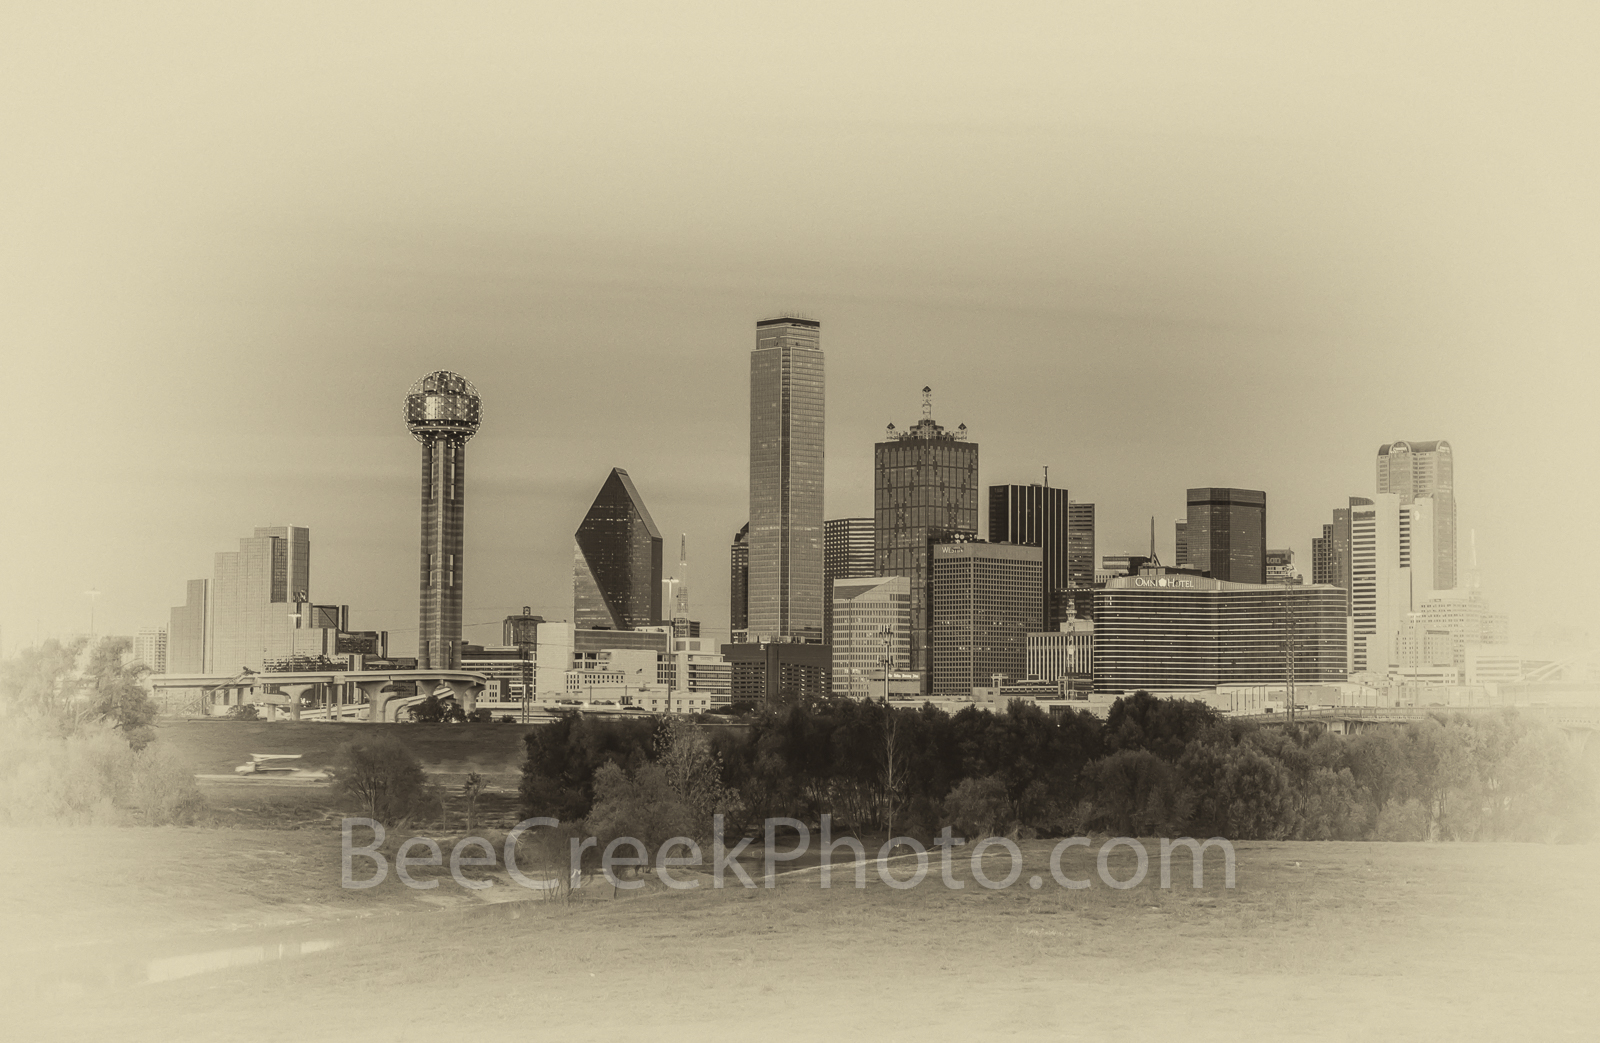 Dallas, skyline, skylines photos, Dallas vintage, sepia, Texas, Dallas Tx skyline, cityscape, city, downtown, landscape photography, cityscapes, skyline photos,, photo